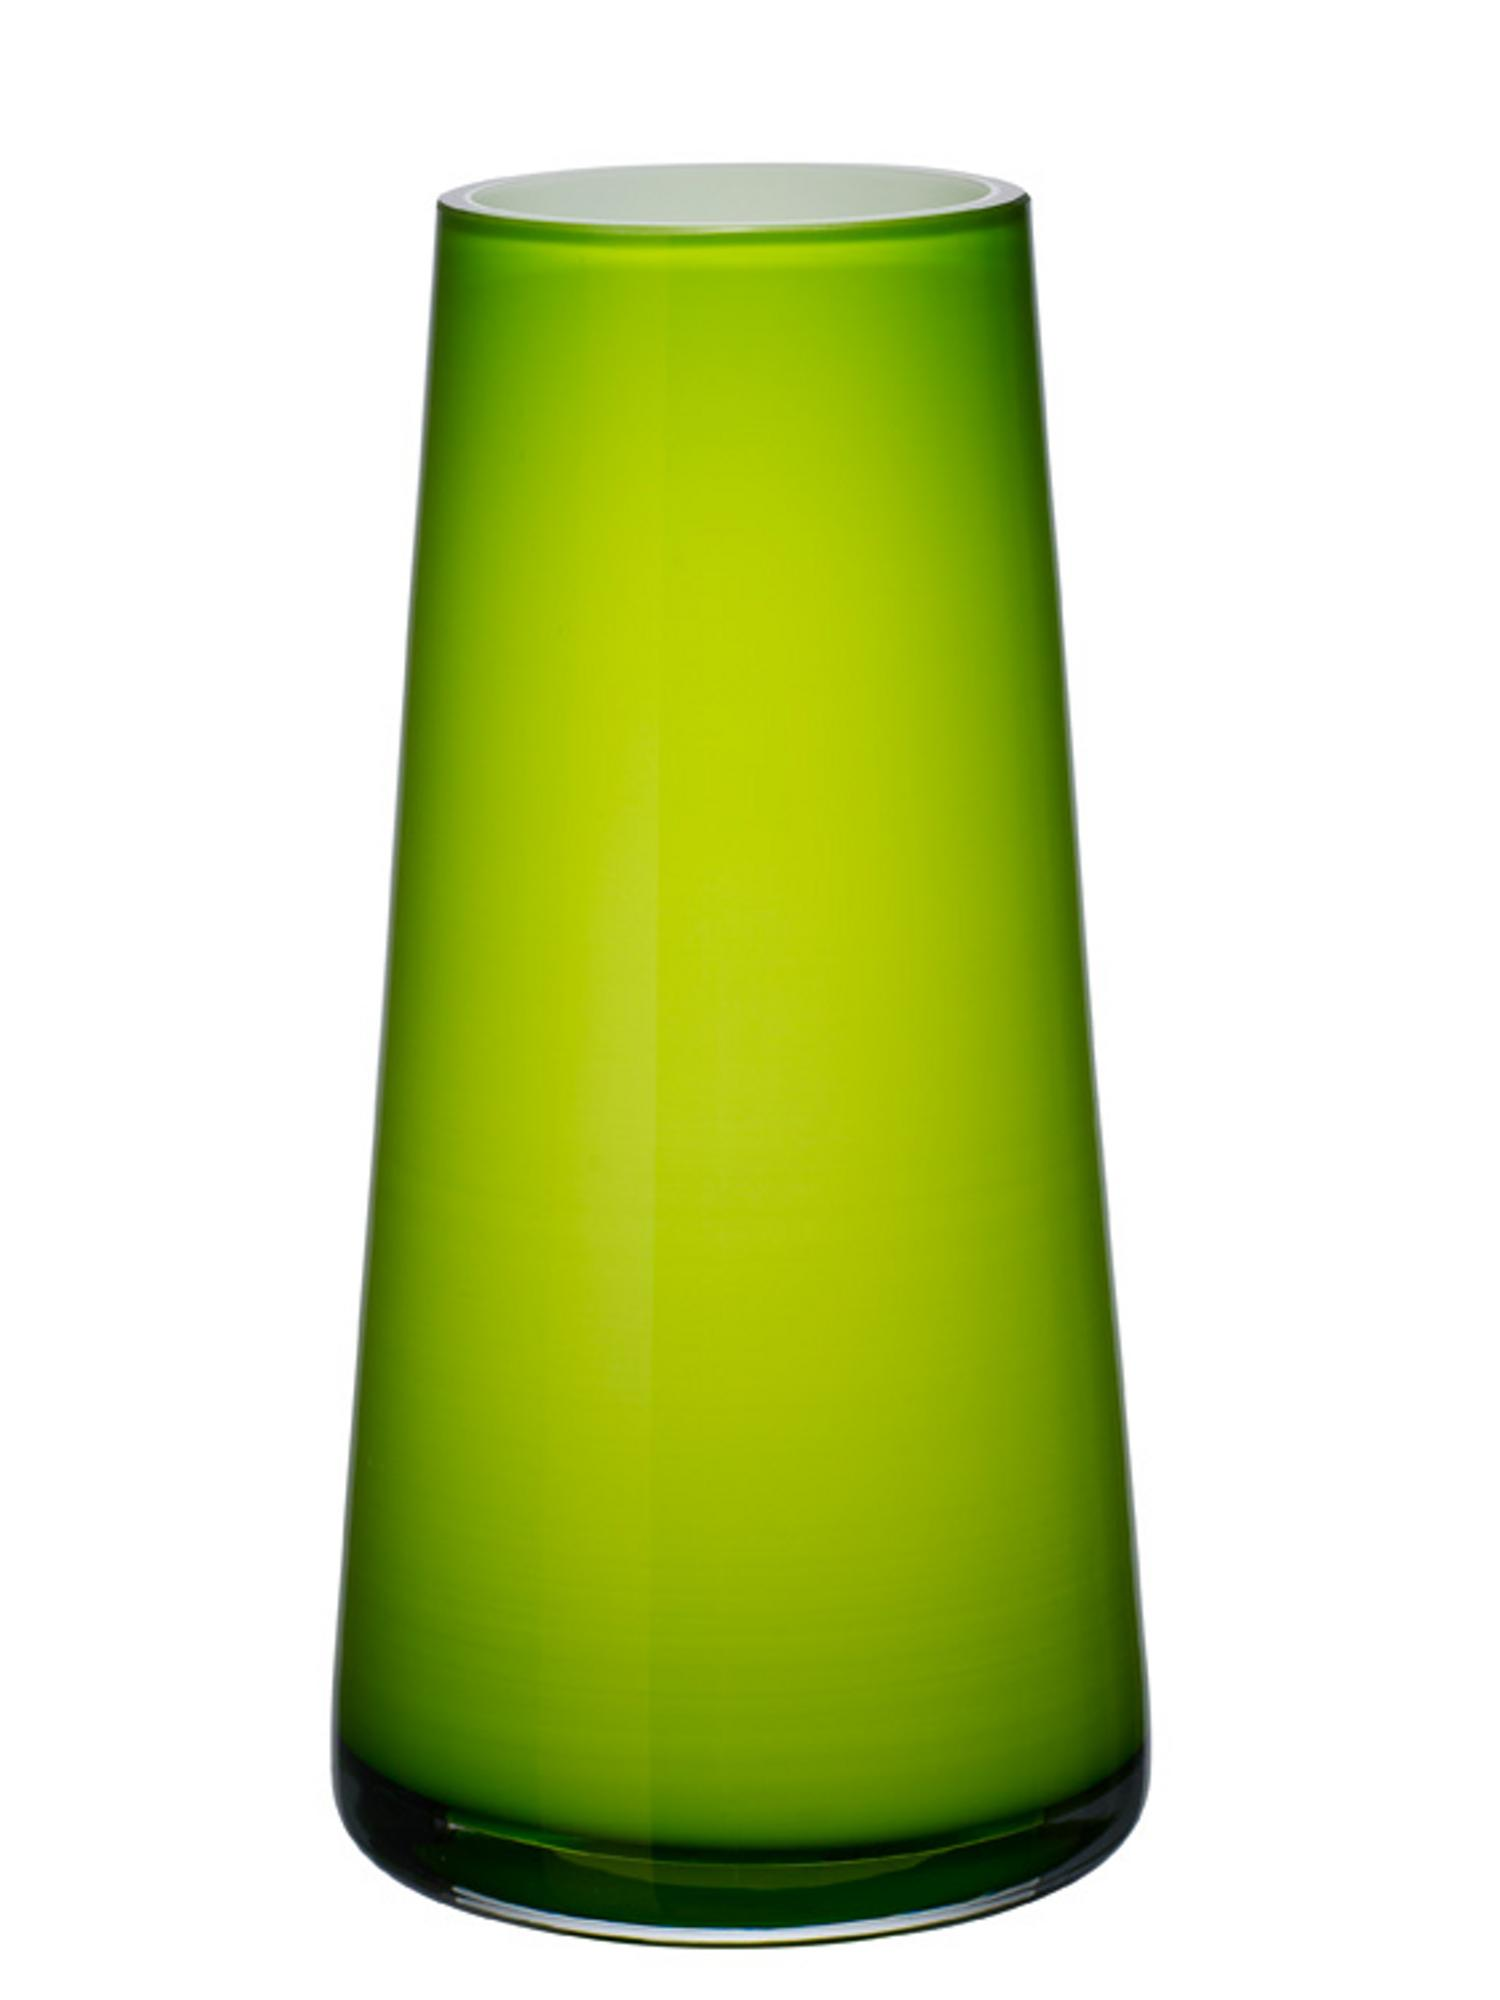 House of fraser green vase - Rollover To Magnify Or Click To Enlarge